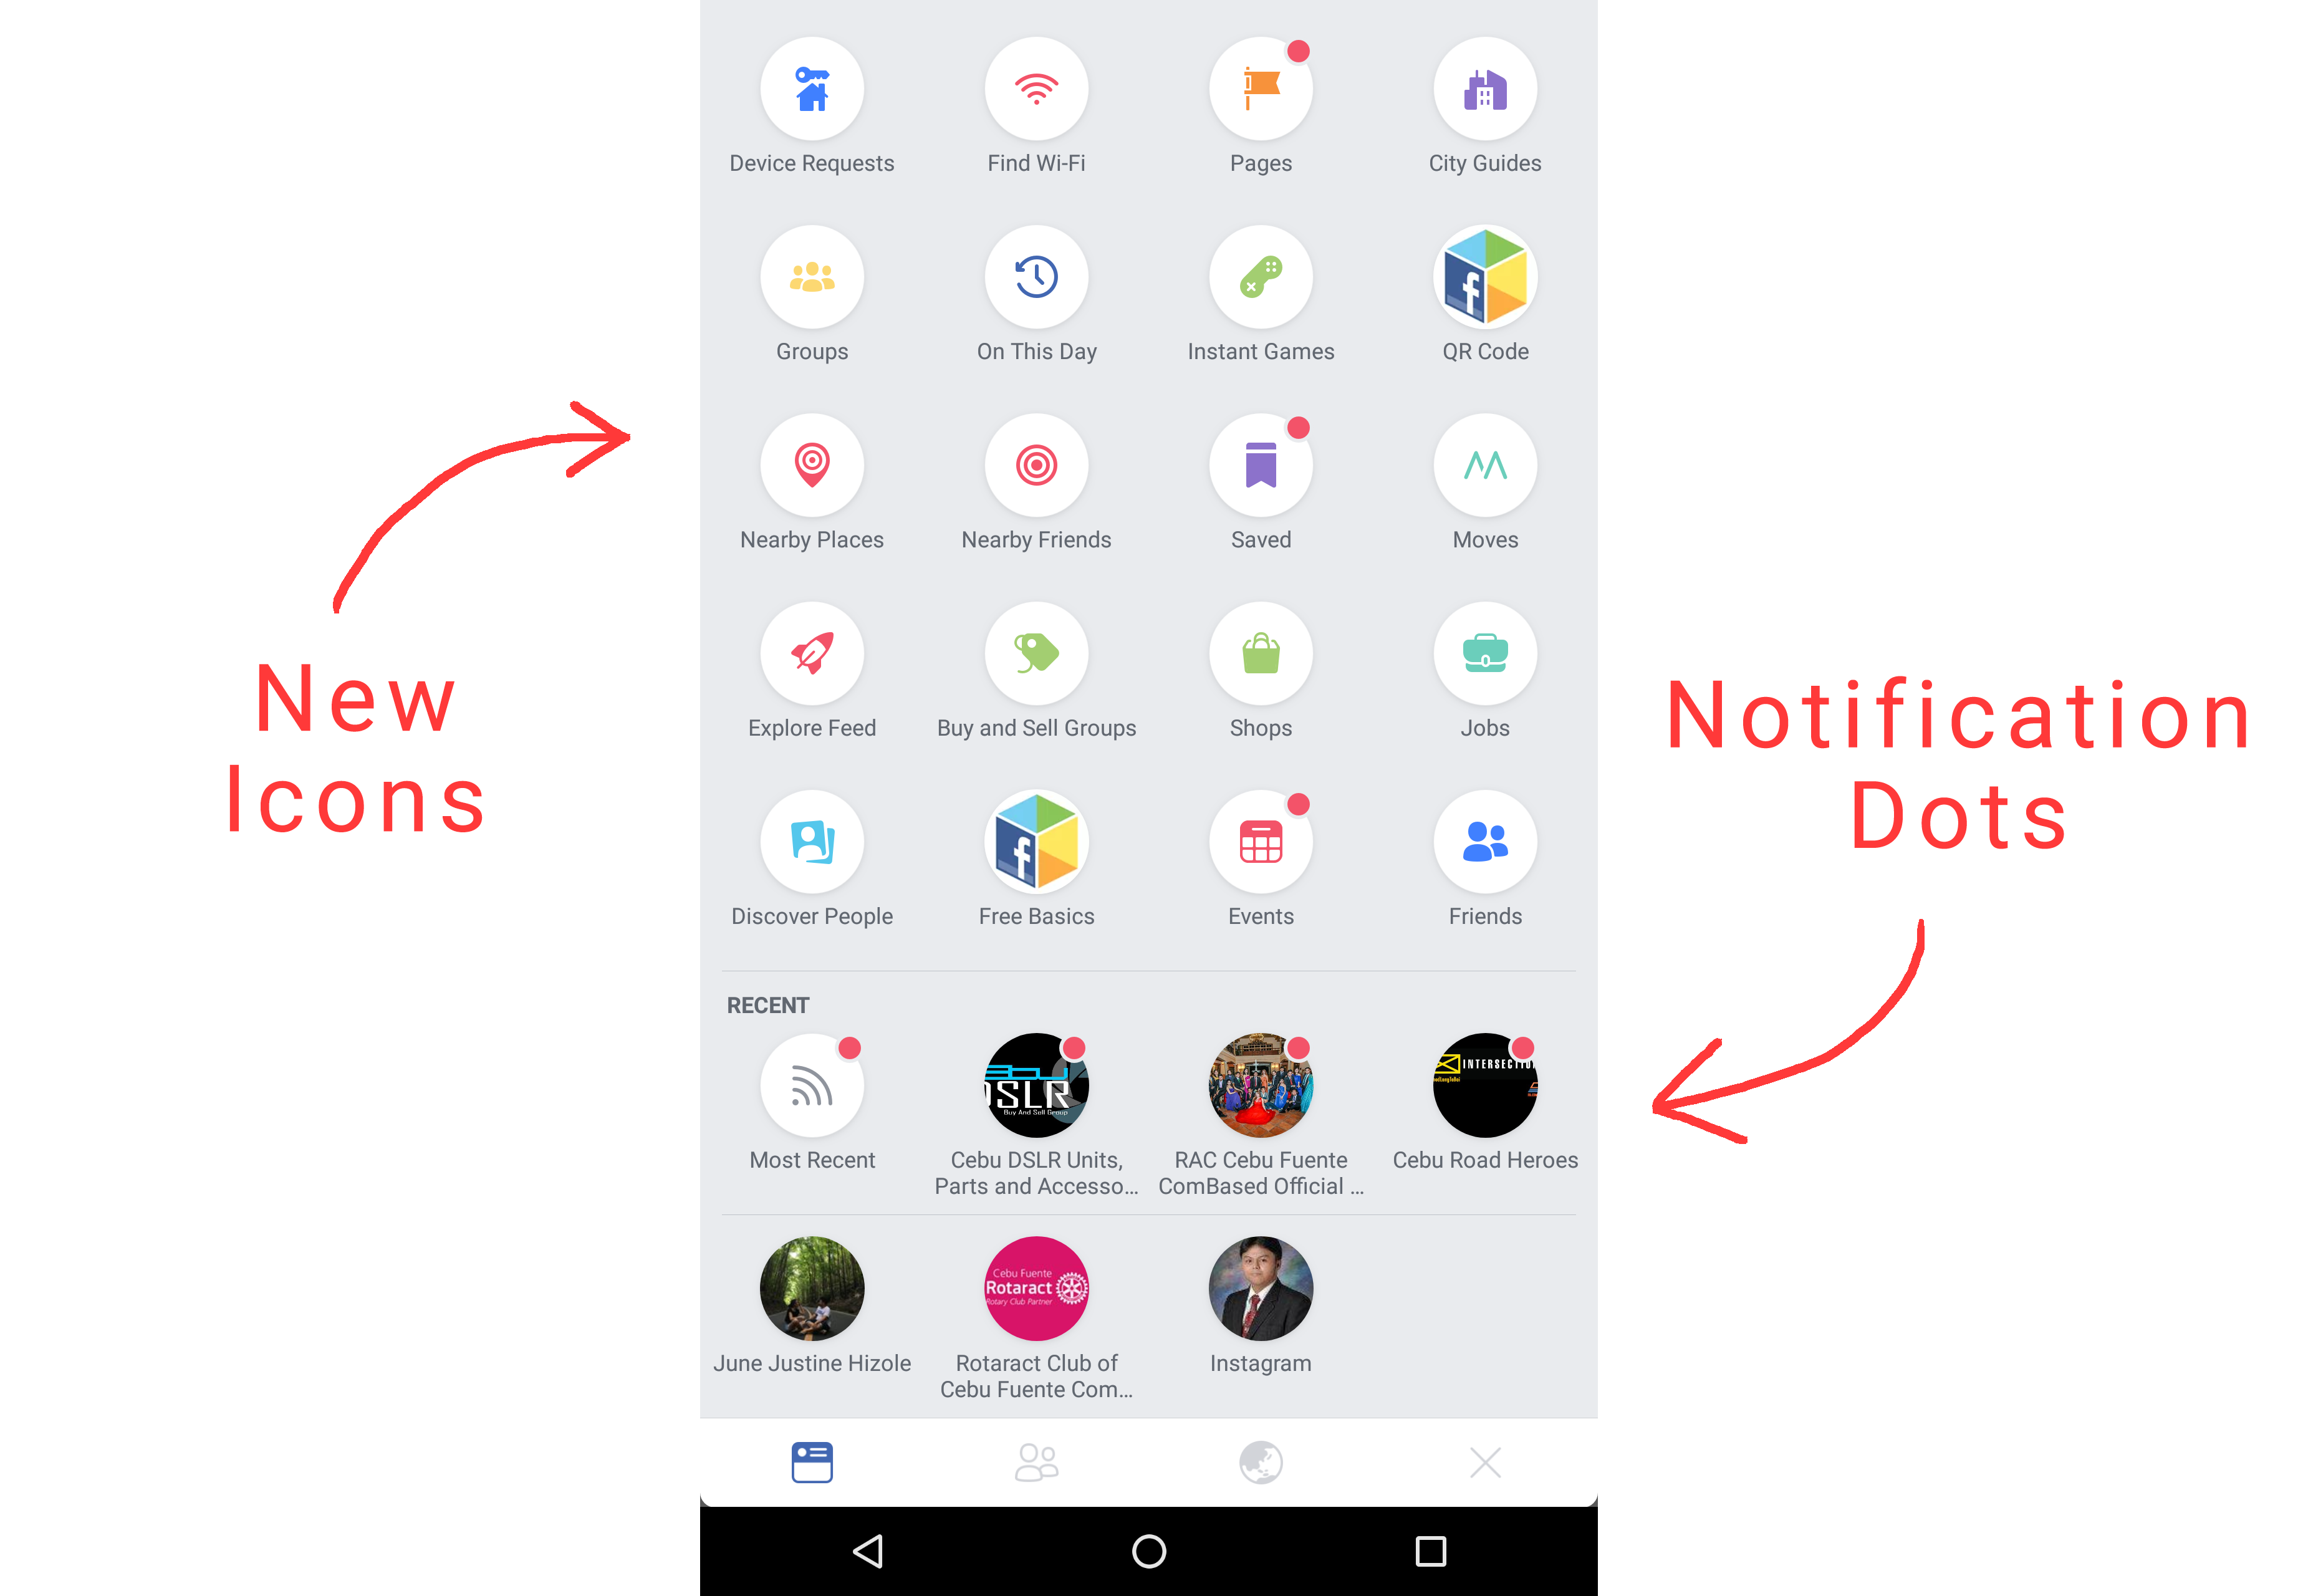 If I Tap The Hamburger Icon Drawer Expands And Hambuger Changes To A Back On Navigation Expanded